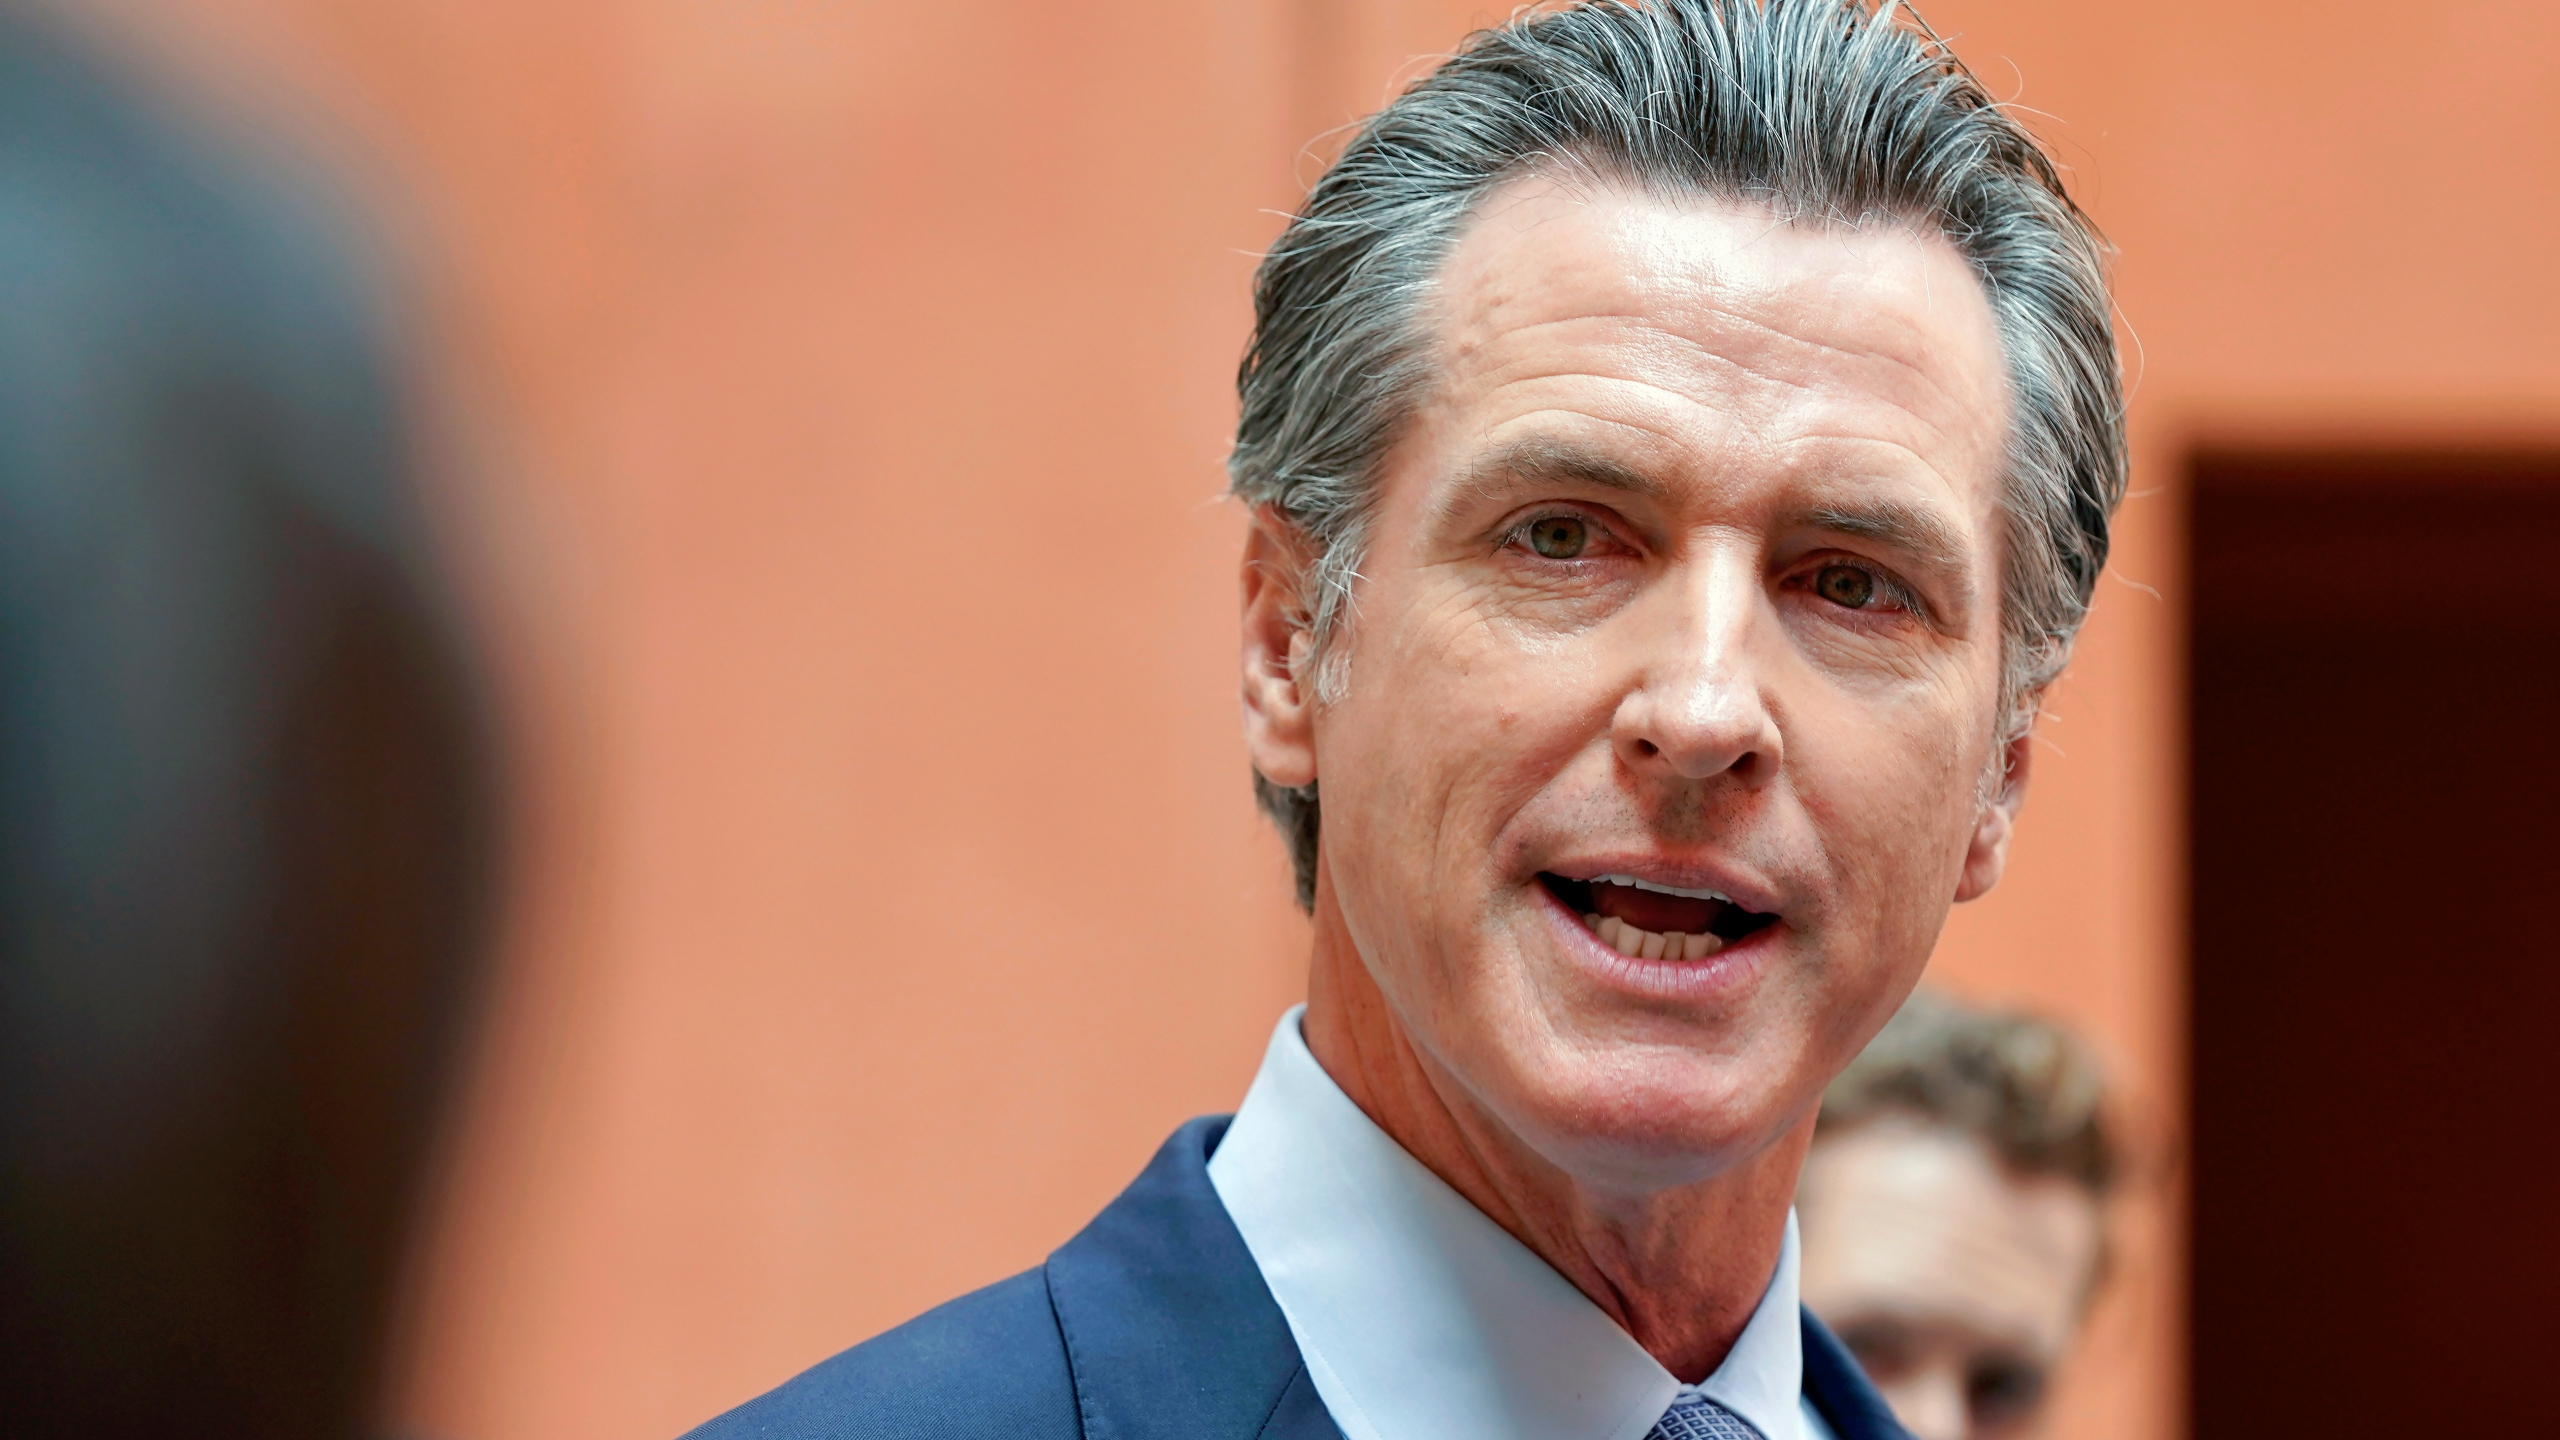 """In this Sept. 10, 2021, file photo California Gov. Gavin Newsom responds to a question while meeting with reporters after casting his recall ballot at a voting center in Sacramento, Calif. The last day to vote in the recall election is Tuesday Sept. 14. A majority of voters must mark """"no"""" on the recall to keep Newsom in office. (AP Photo/Rich Pedroncelli, File)"""